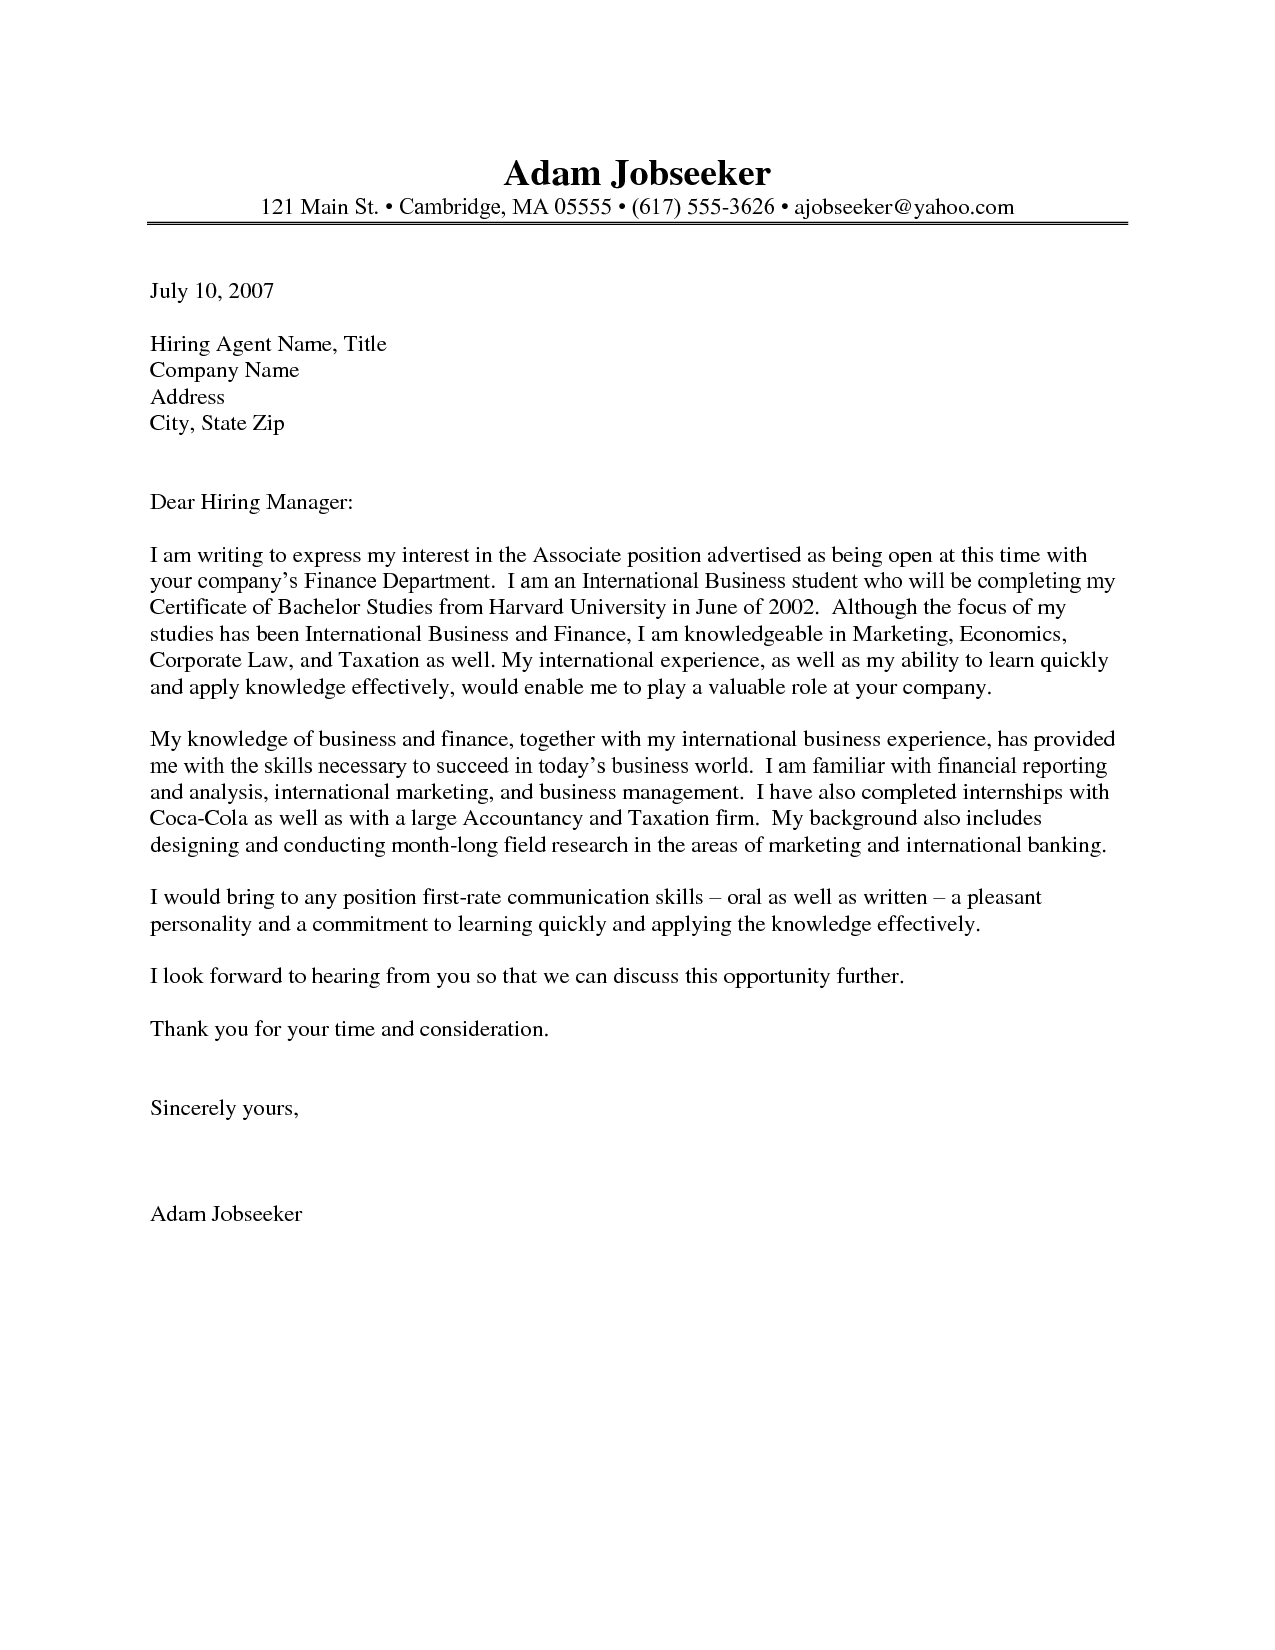 resignation letter gratitude cover letter internship bank sample ...